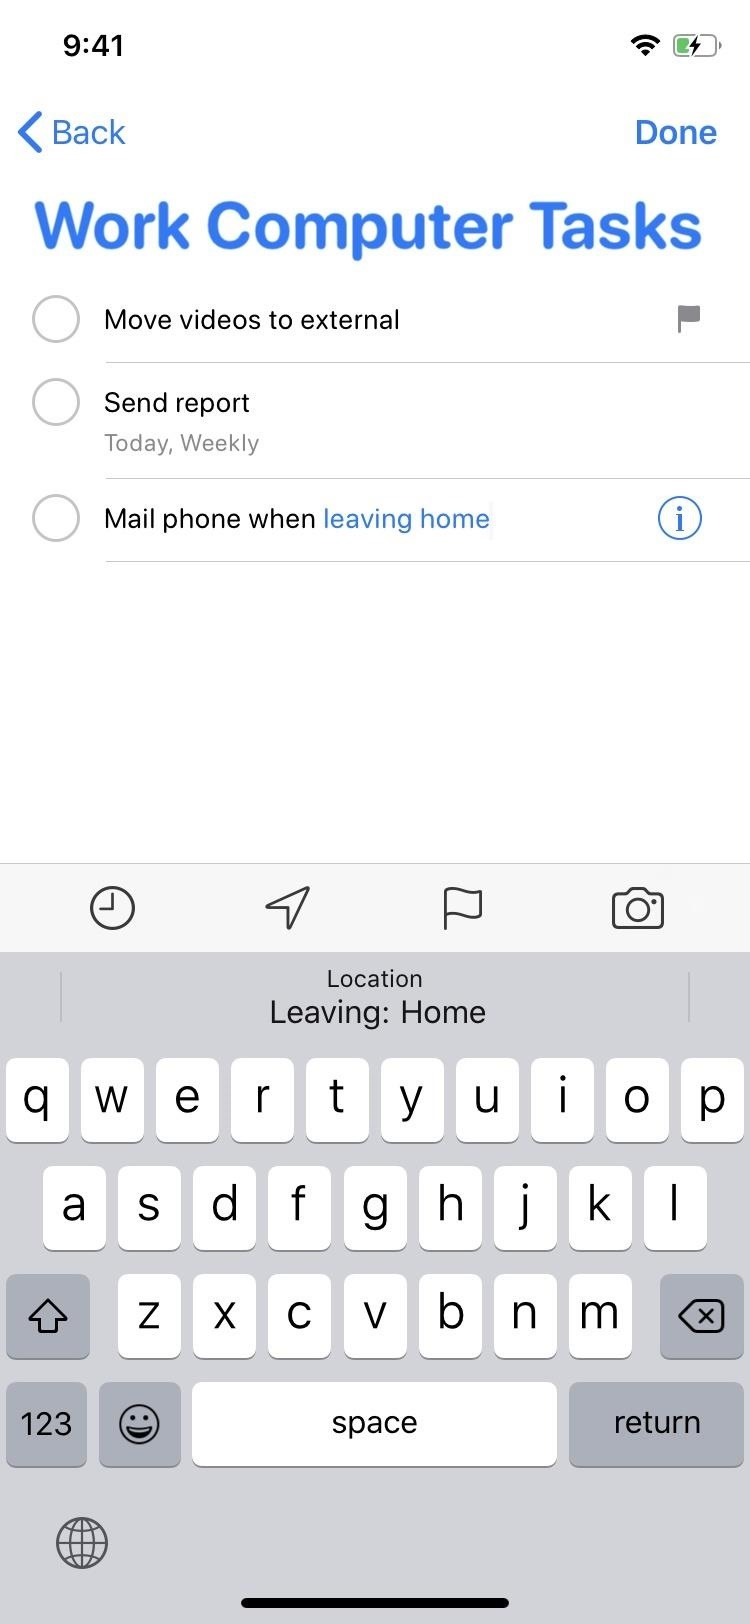 15 New reminder features in iOS 13 This will do So that you really want to use the app